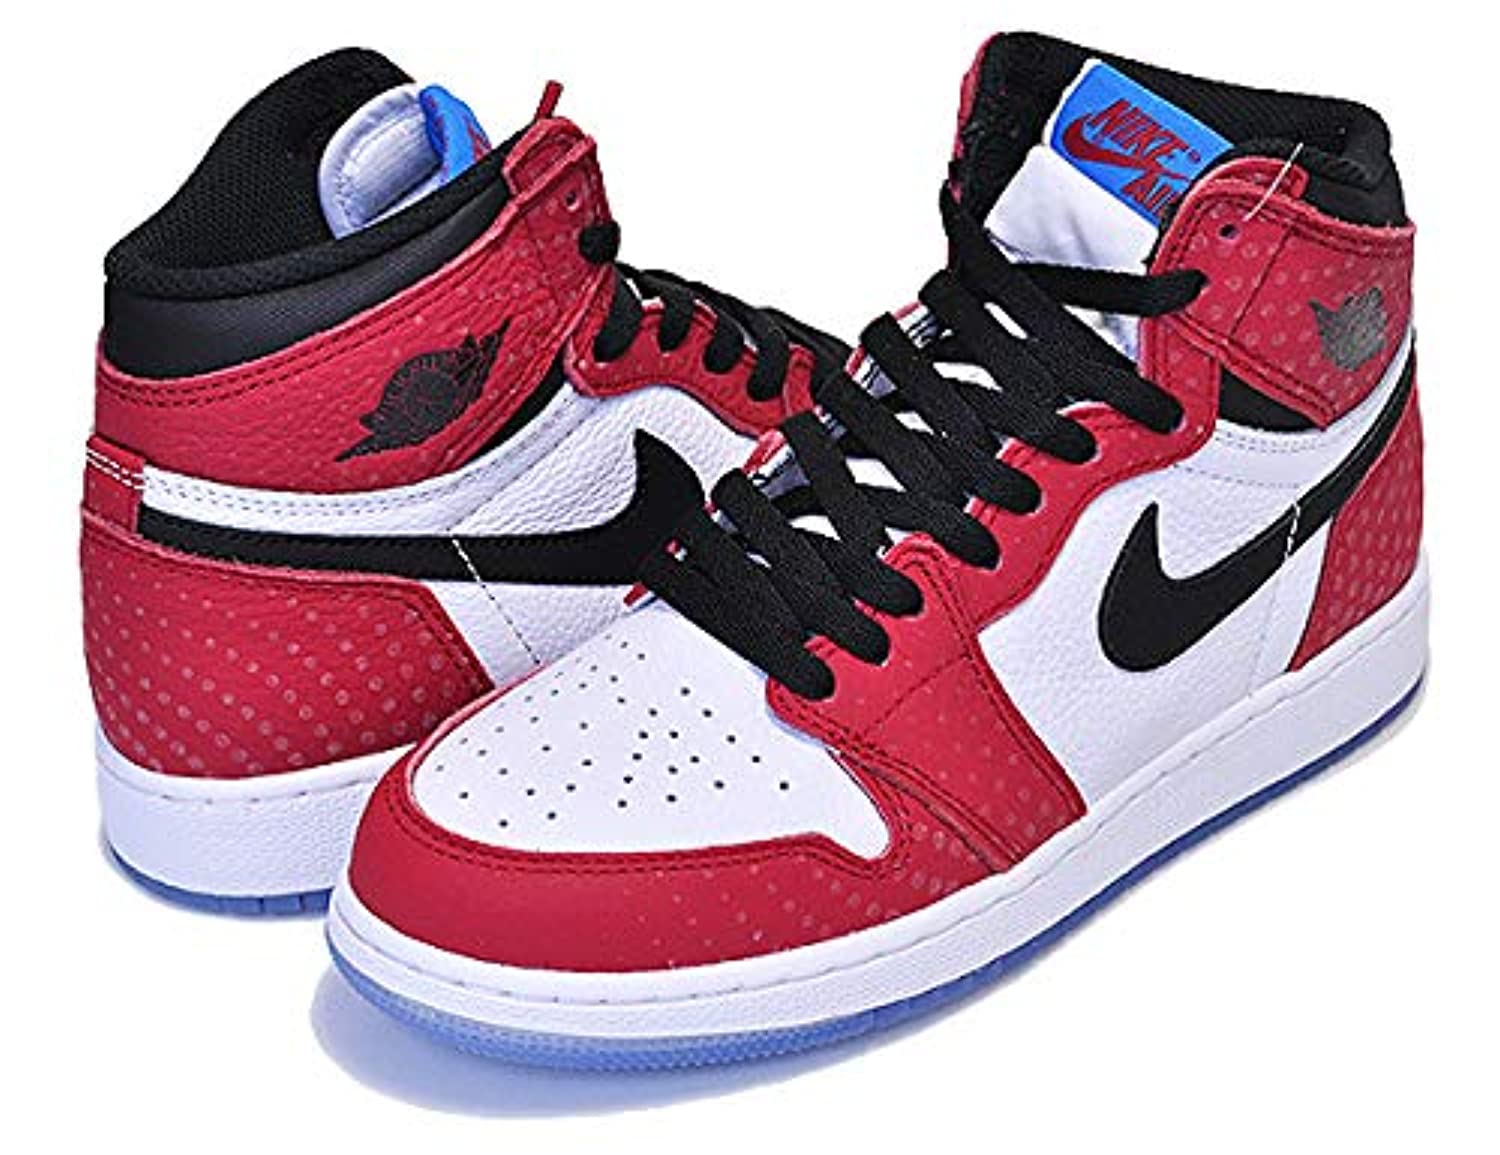 [ナイキ] エアジョーダン 1 ハイ AIR JORDAN 1 HIGH OG GS SPIDER-MAN ORIGIN STORY gym red/black-white-photo blu 575441-602 [並行輸入品]